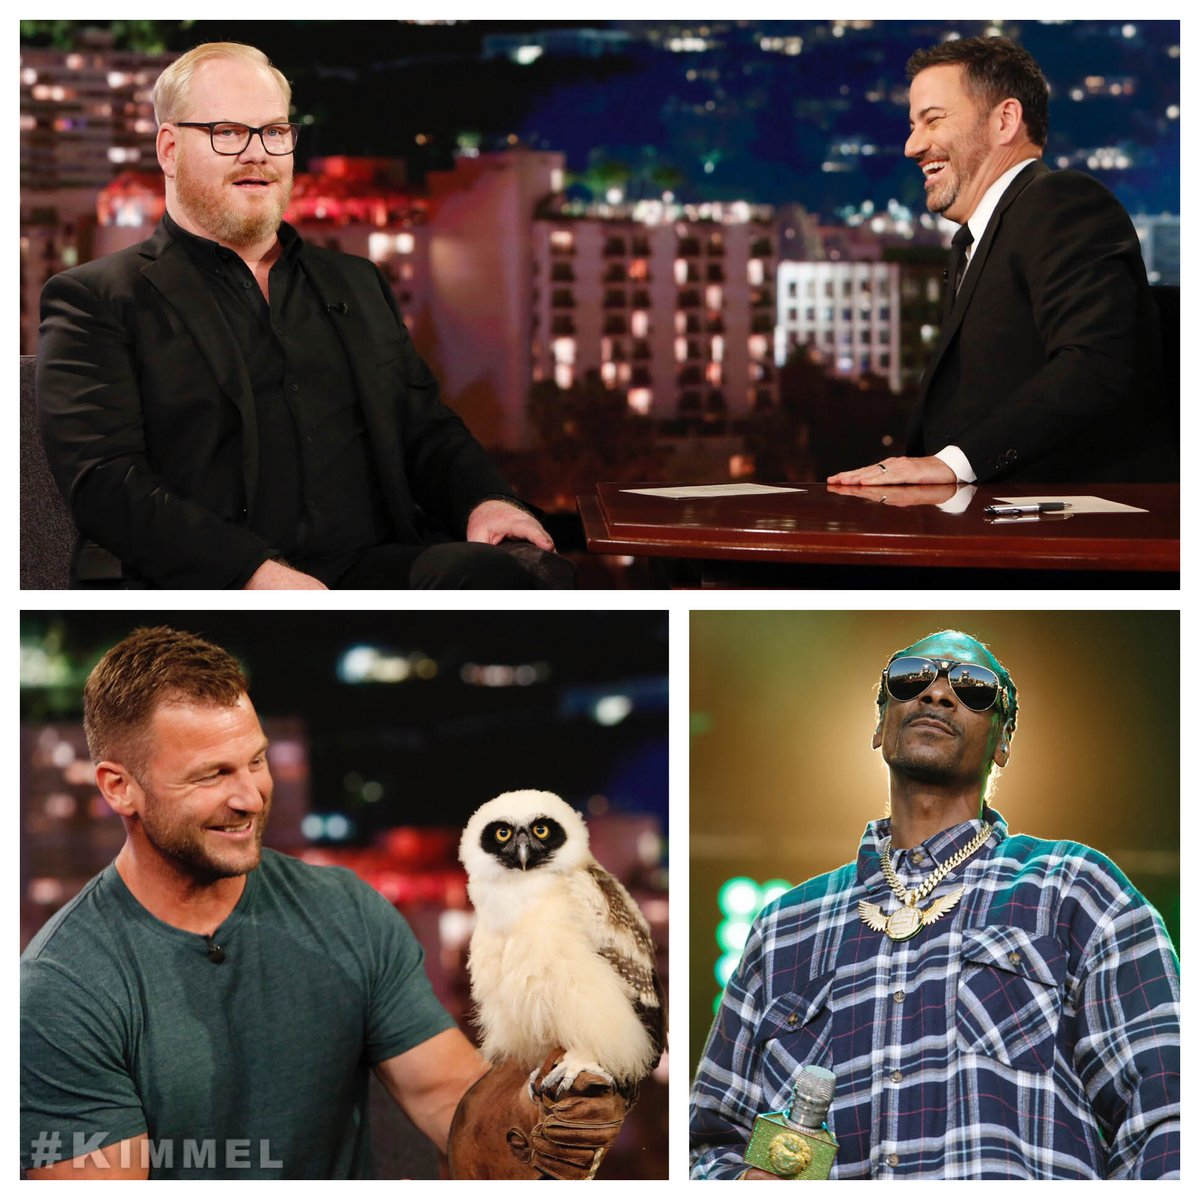 Tonight on #Kimmel @JimGaffigan #QualityTime, wild animals with @DaveSalmoni #AnimalPlanet & music from @SnoopDogg #IWannaThankMe <br>http://pic.twitter.com/dZrgyDK4T2